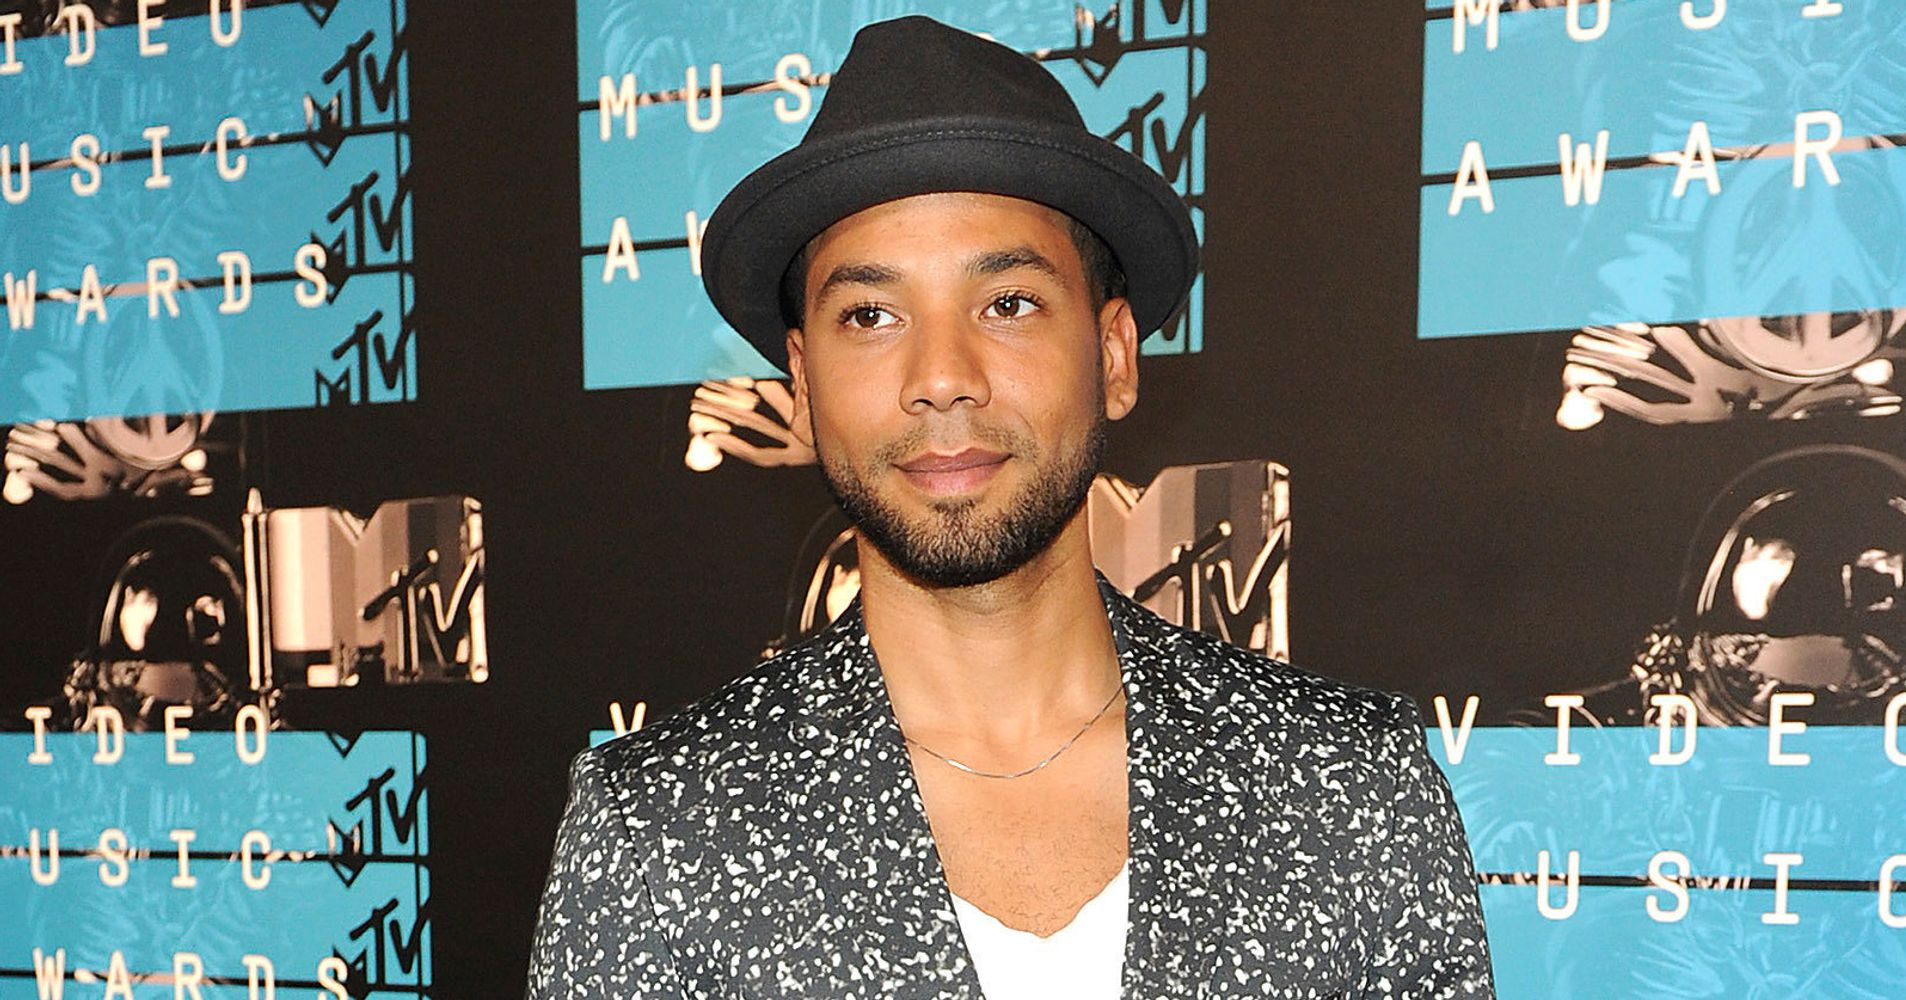 Jussie Smollett Charged With Filing False Police Report About Alleged Attack